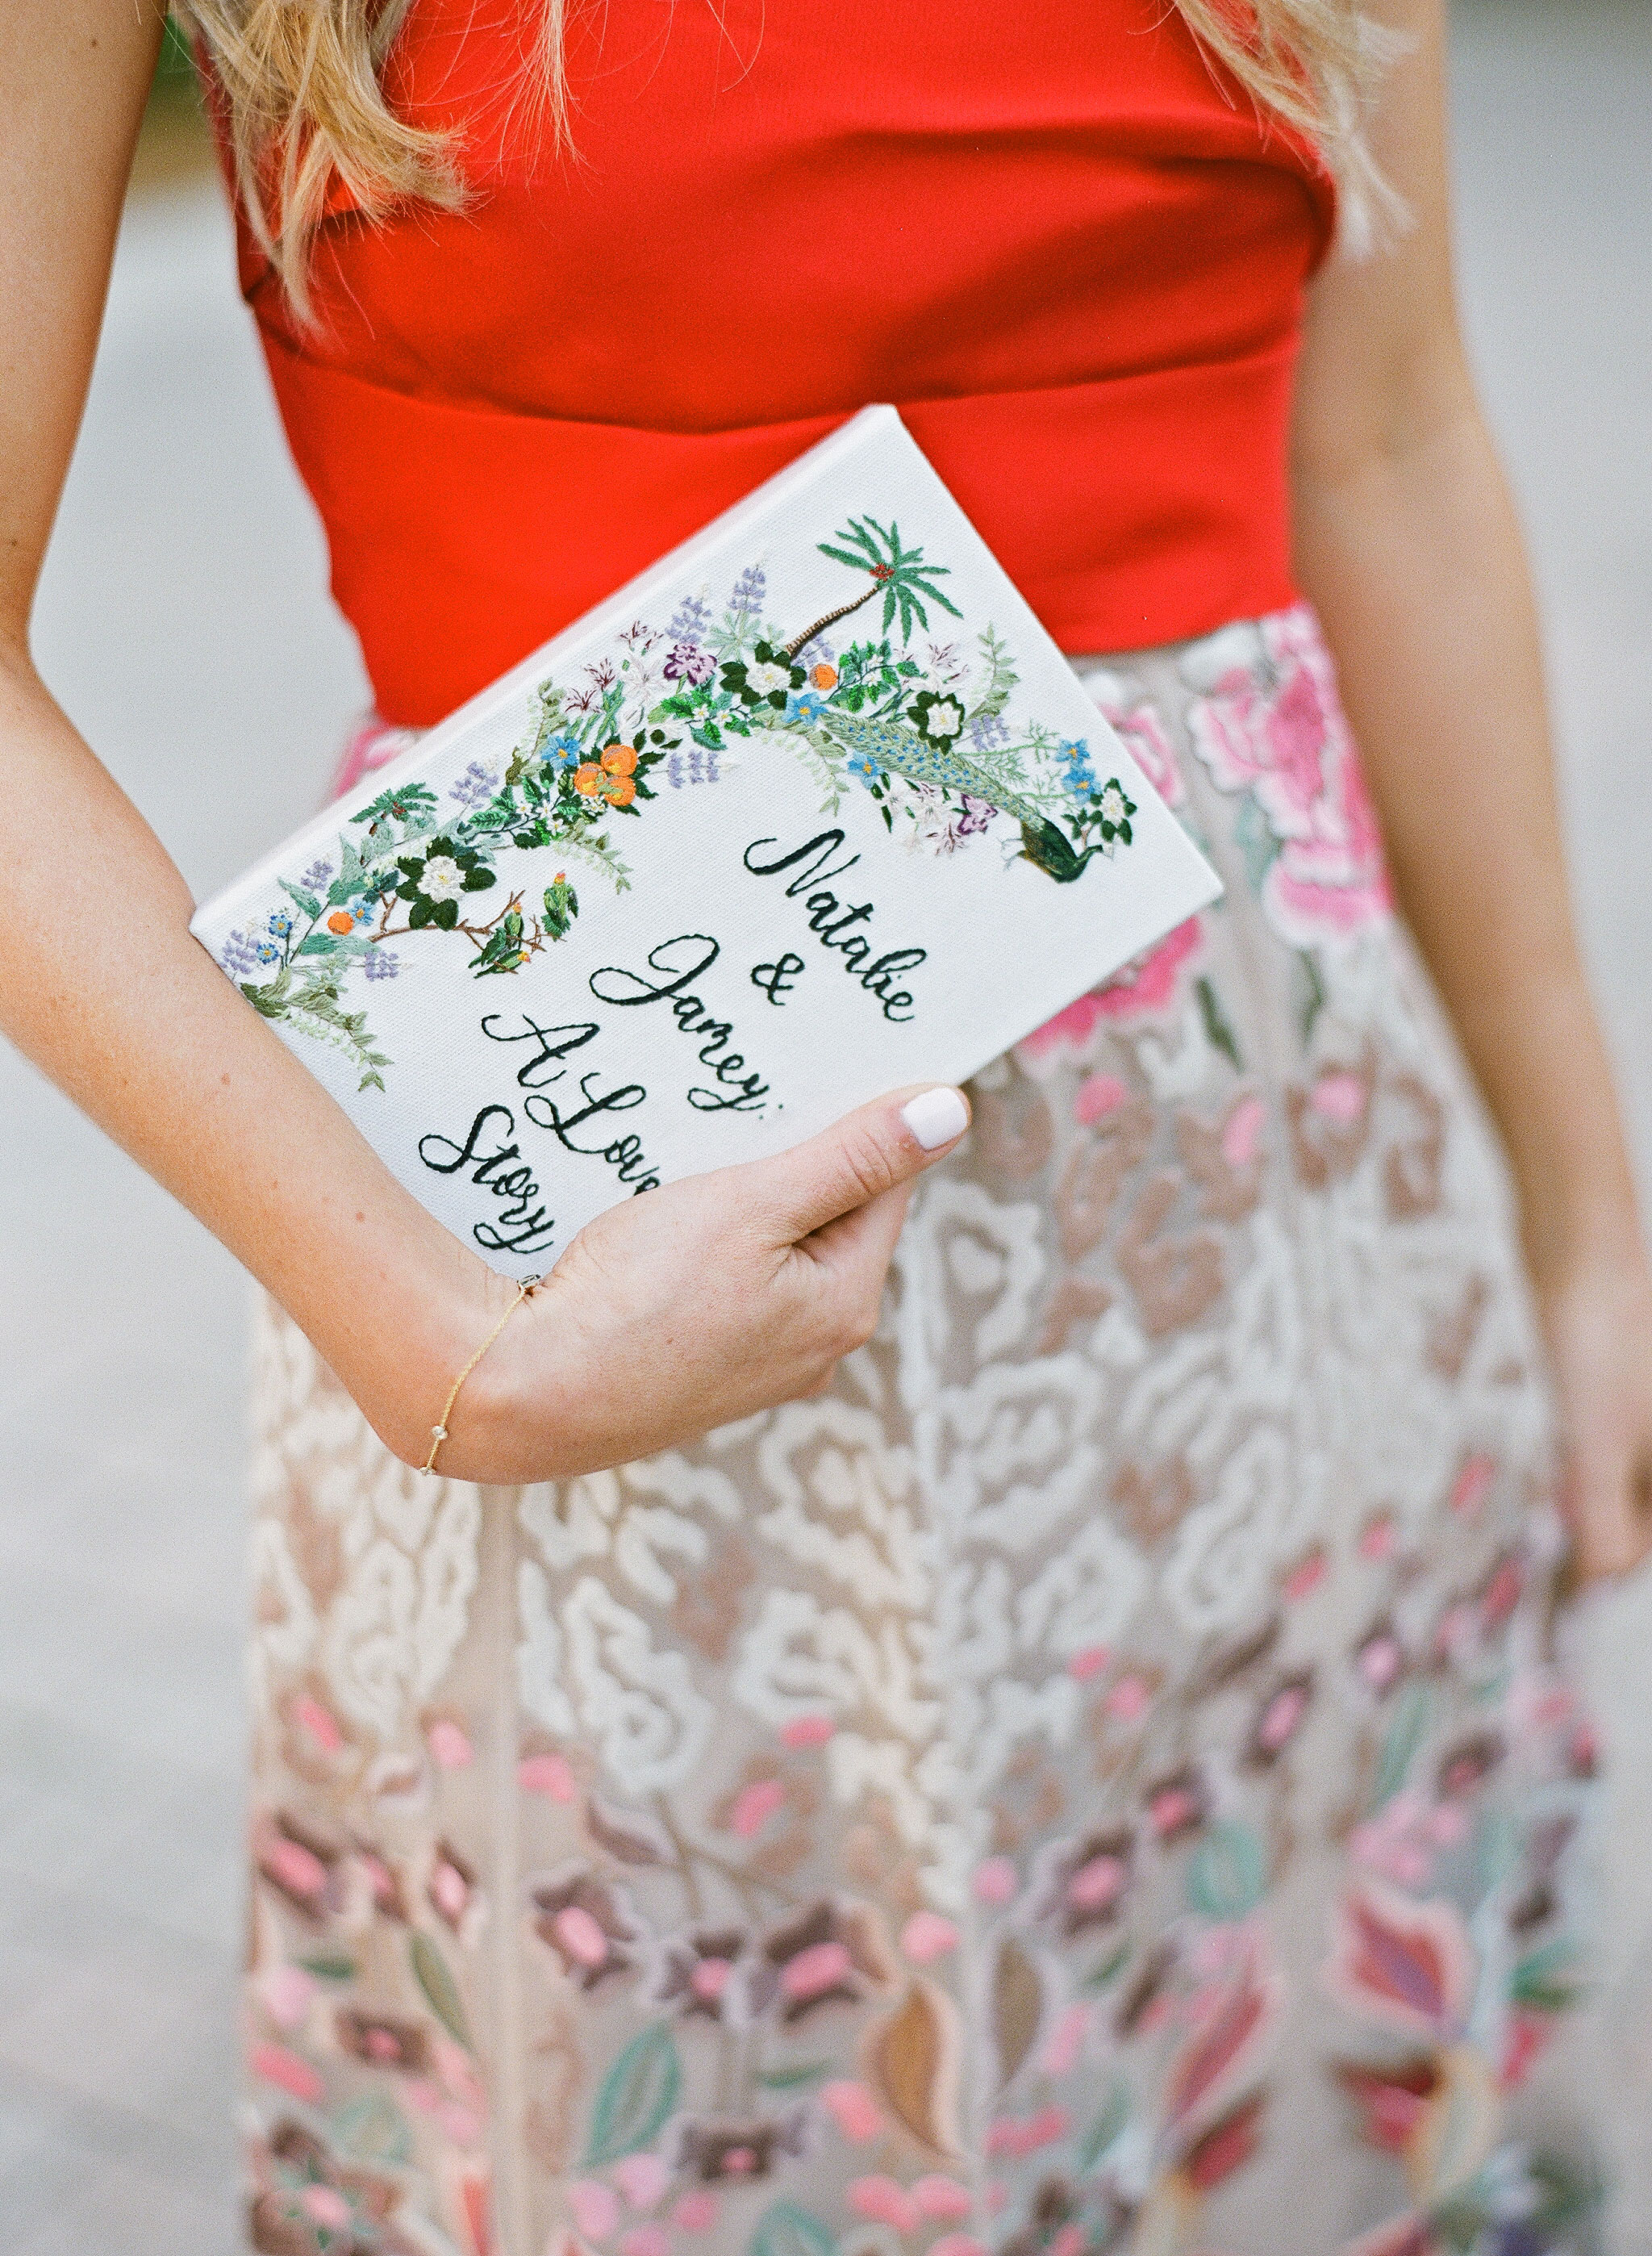 natalie jamey rehearsal dinner clutch